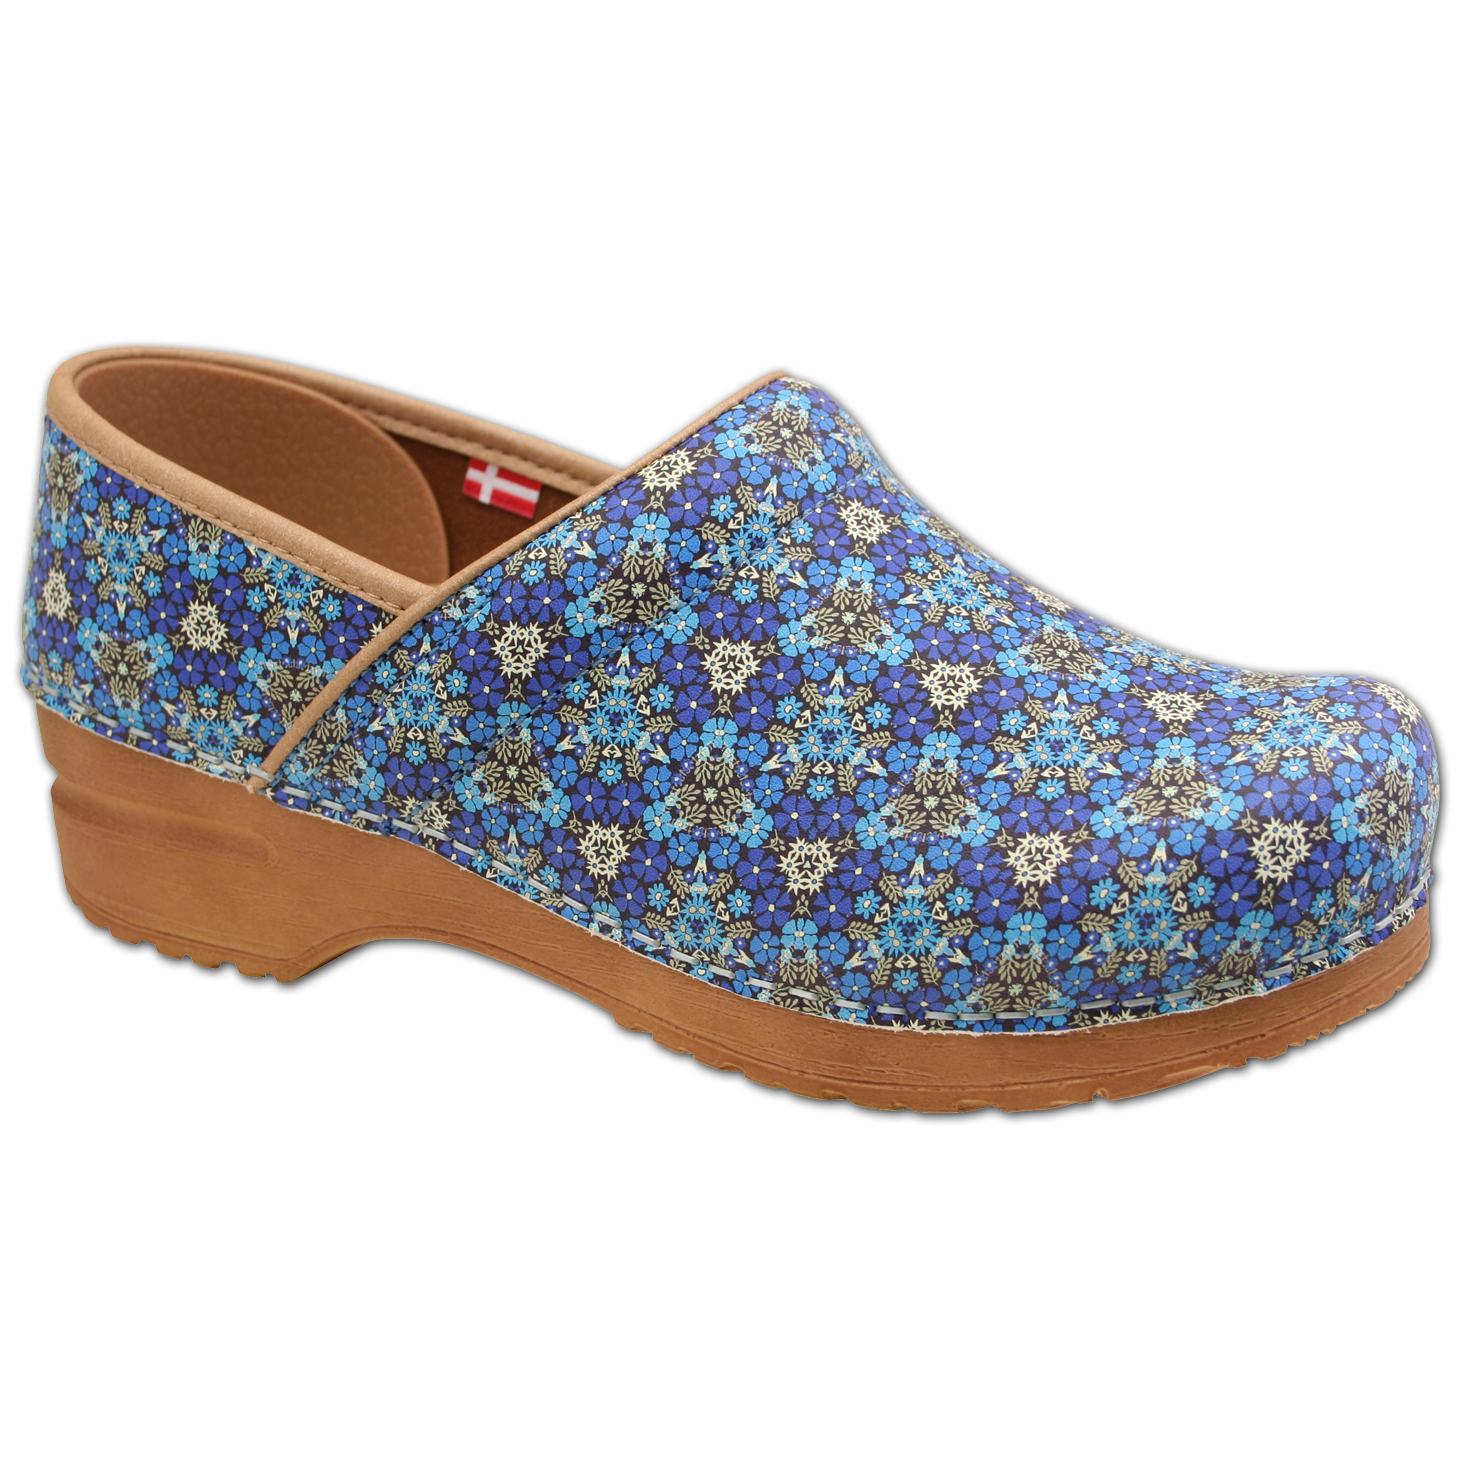 Sanita Ripley Women's Closed Back Clog